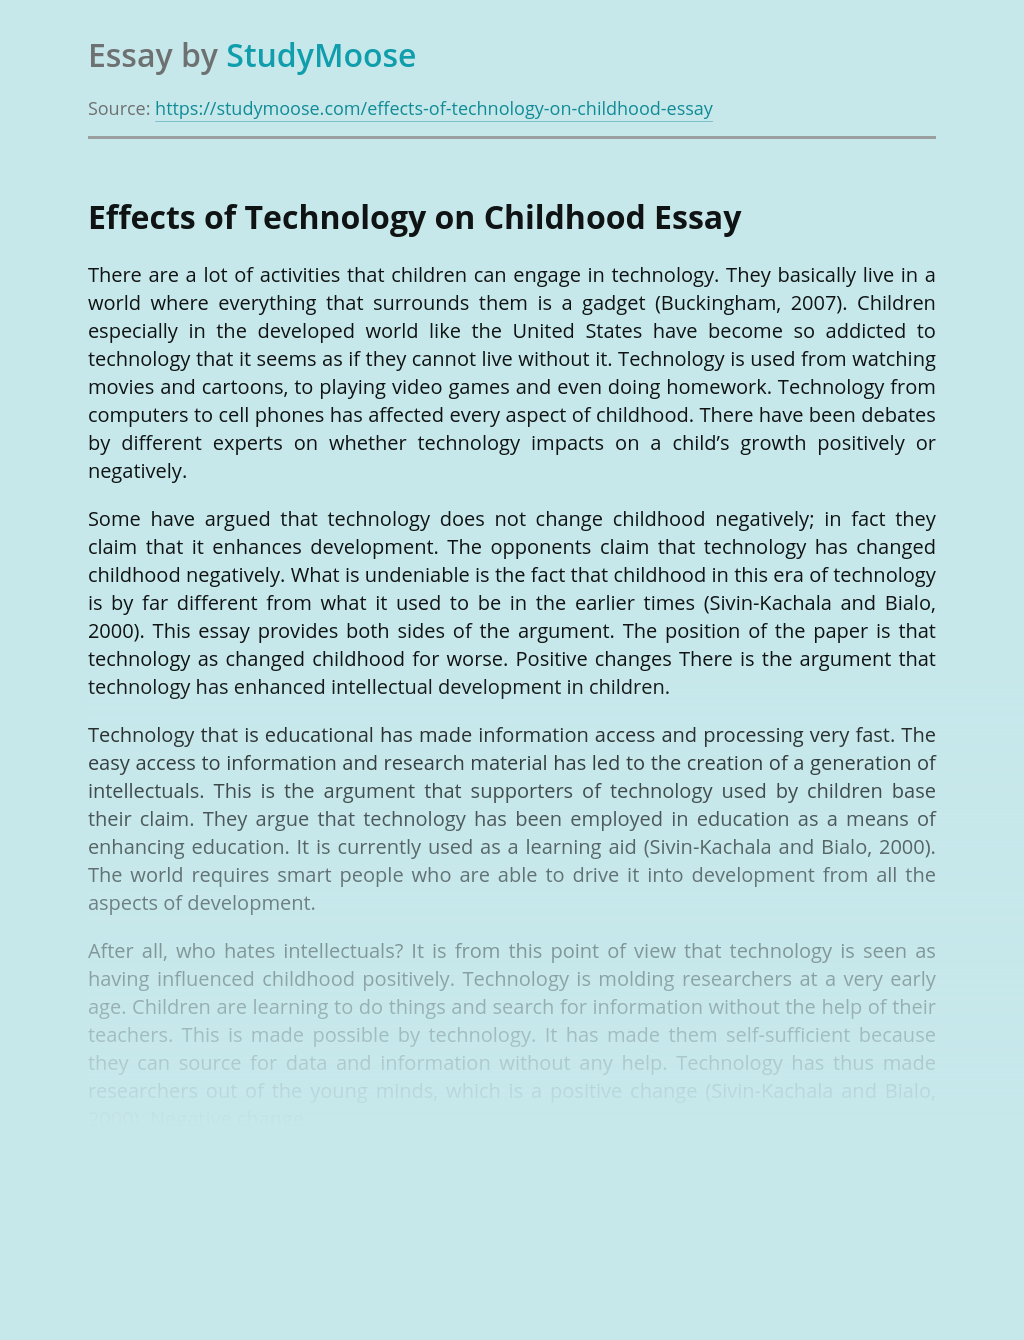 Effects of Technology on Childhood